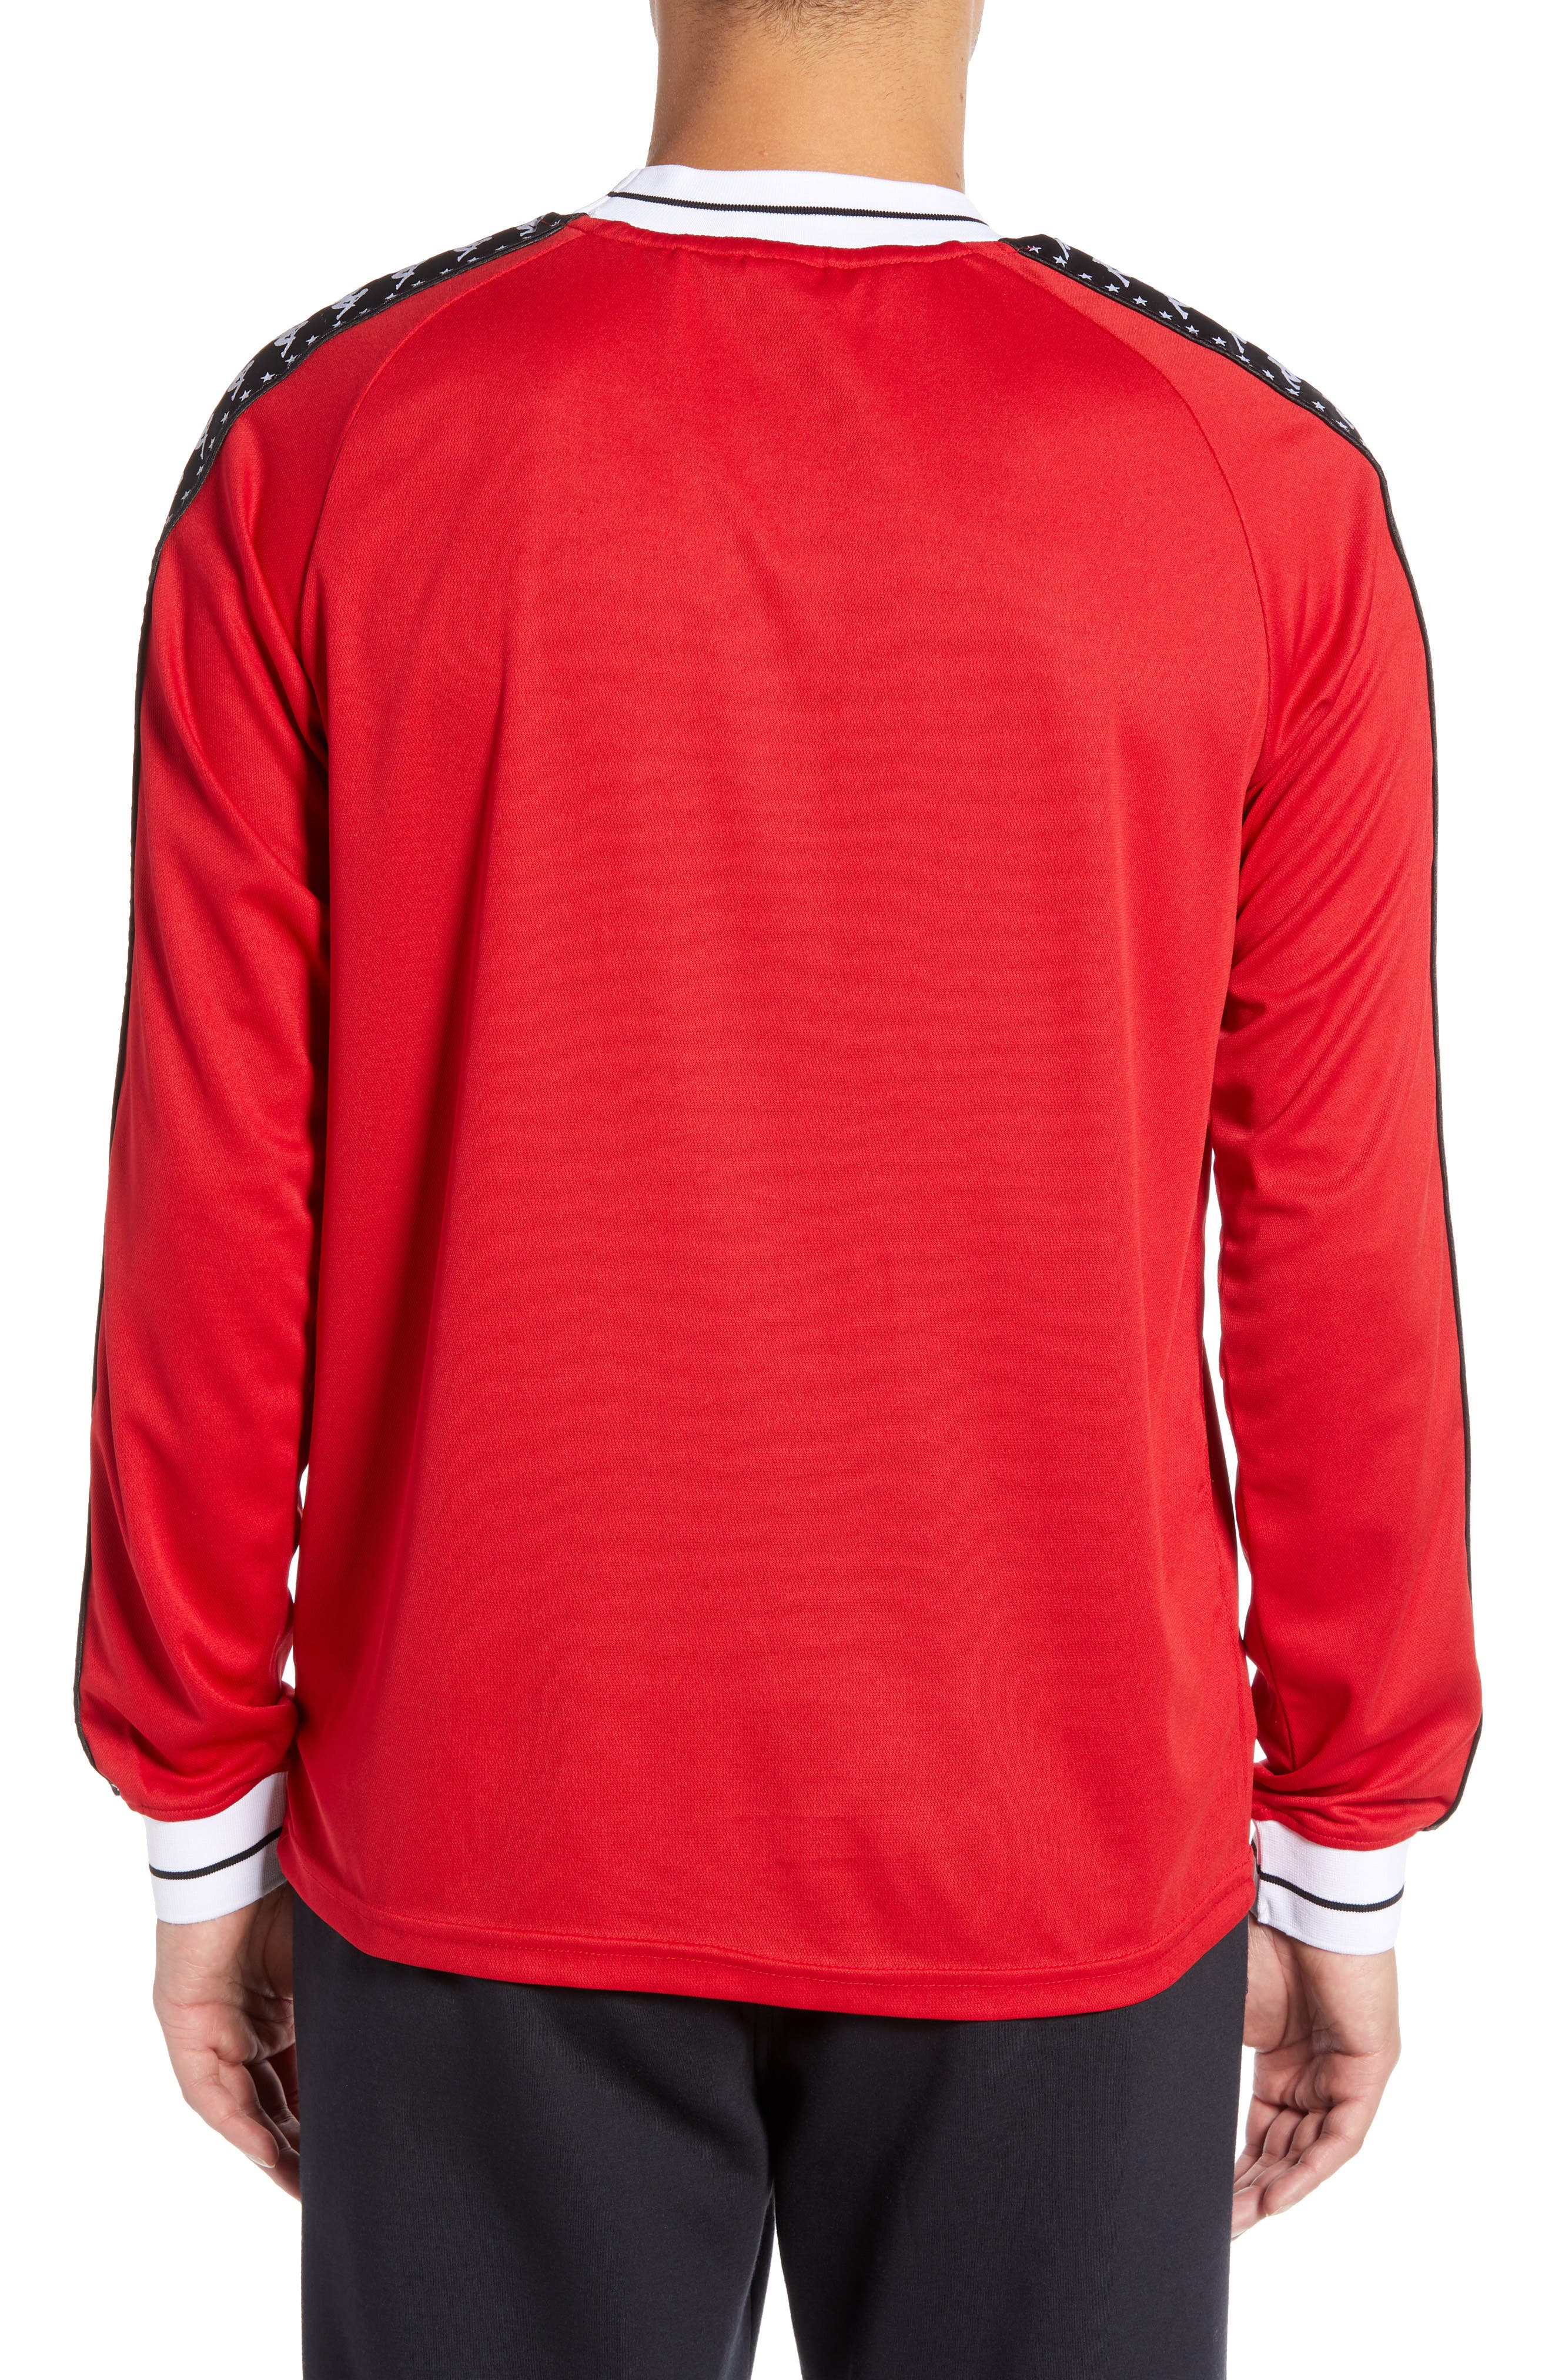 Authentic Aneat Logo Taped Long Sleeve T-Shirt,                             Alternate thumbnail 2, color,                             RED/ BLACK/ WHITE